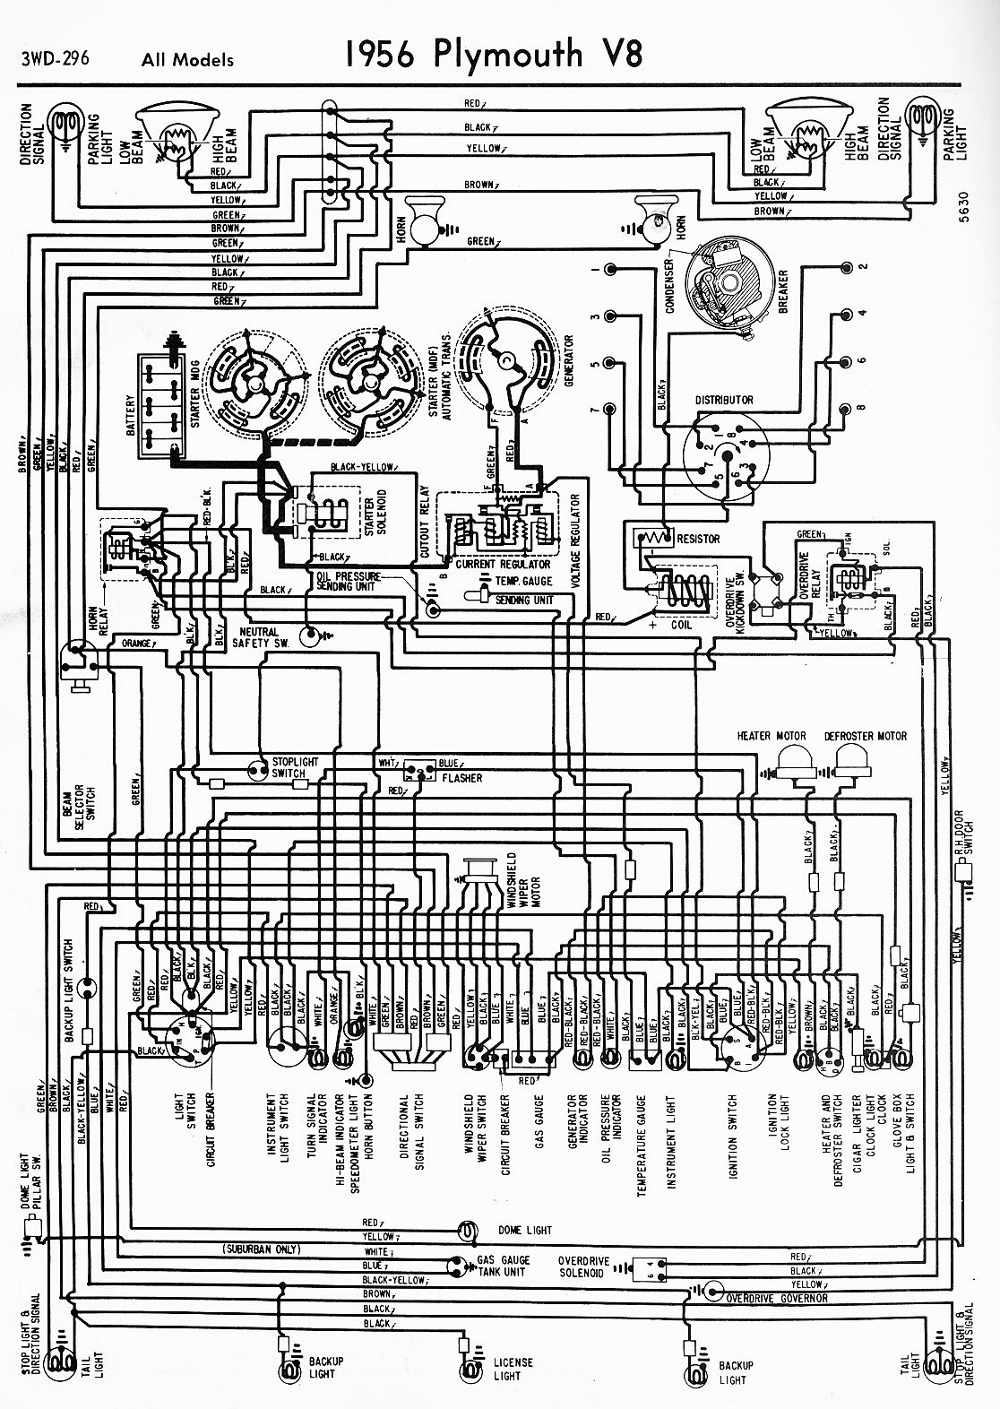 1956 Packard Wiring Diagram Online Manuual Of Diagrams 911 December 2011 Rh Wiringdiagrams911 Blogspot Com 1958 1957